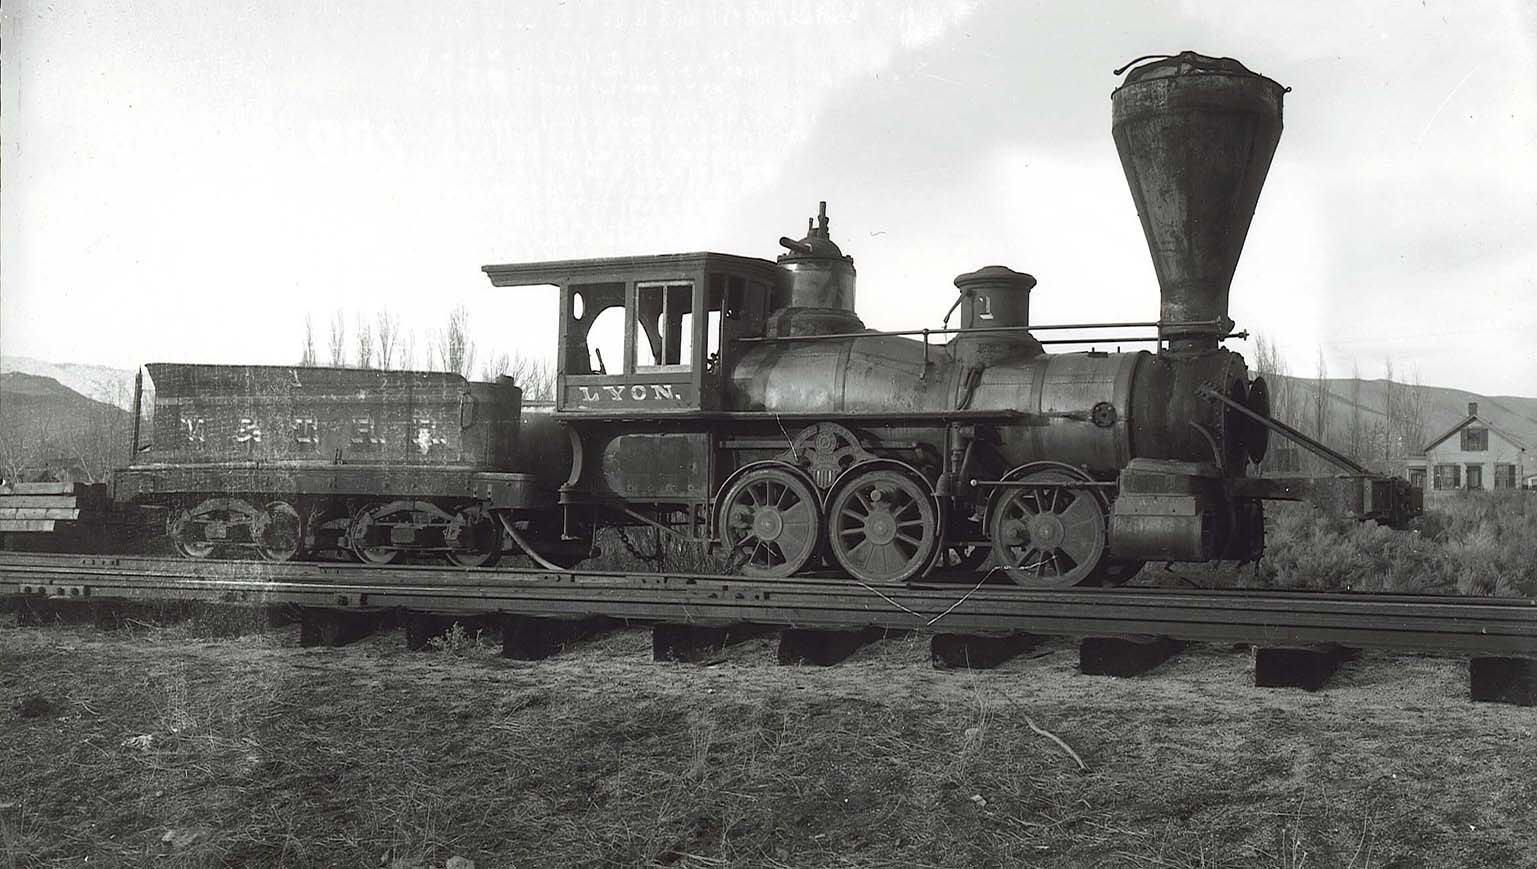 Historical photo: The Lyon locomotive – the first one ordered and used by the Virginia & Truckee Railroad in in 1869 – sits on tracks in Carson City in the late 1800s. The locomotive was scrapped in the late 1890s. Photo courtesy of Nevada State Railroad Museum.